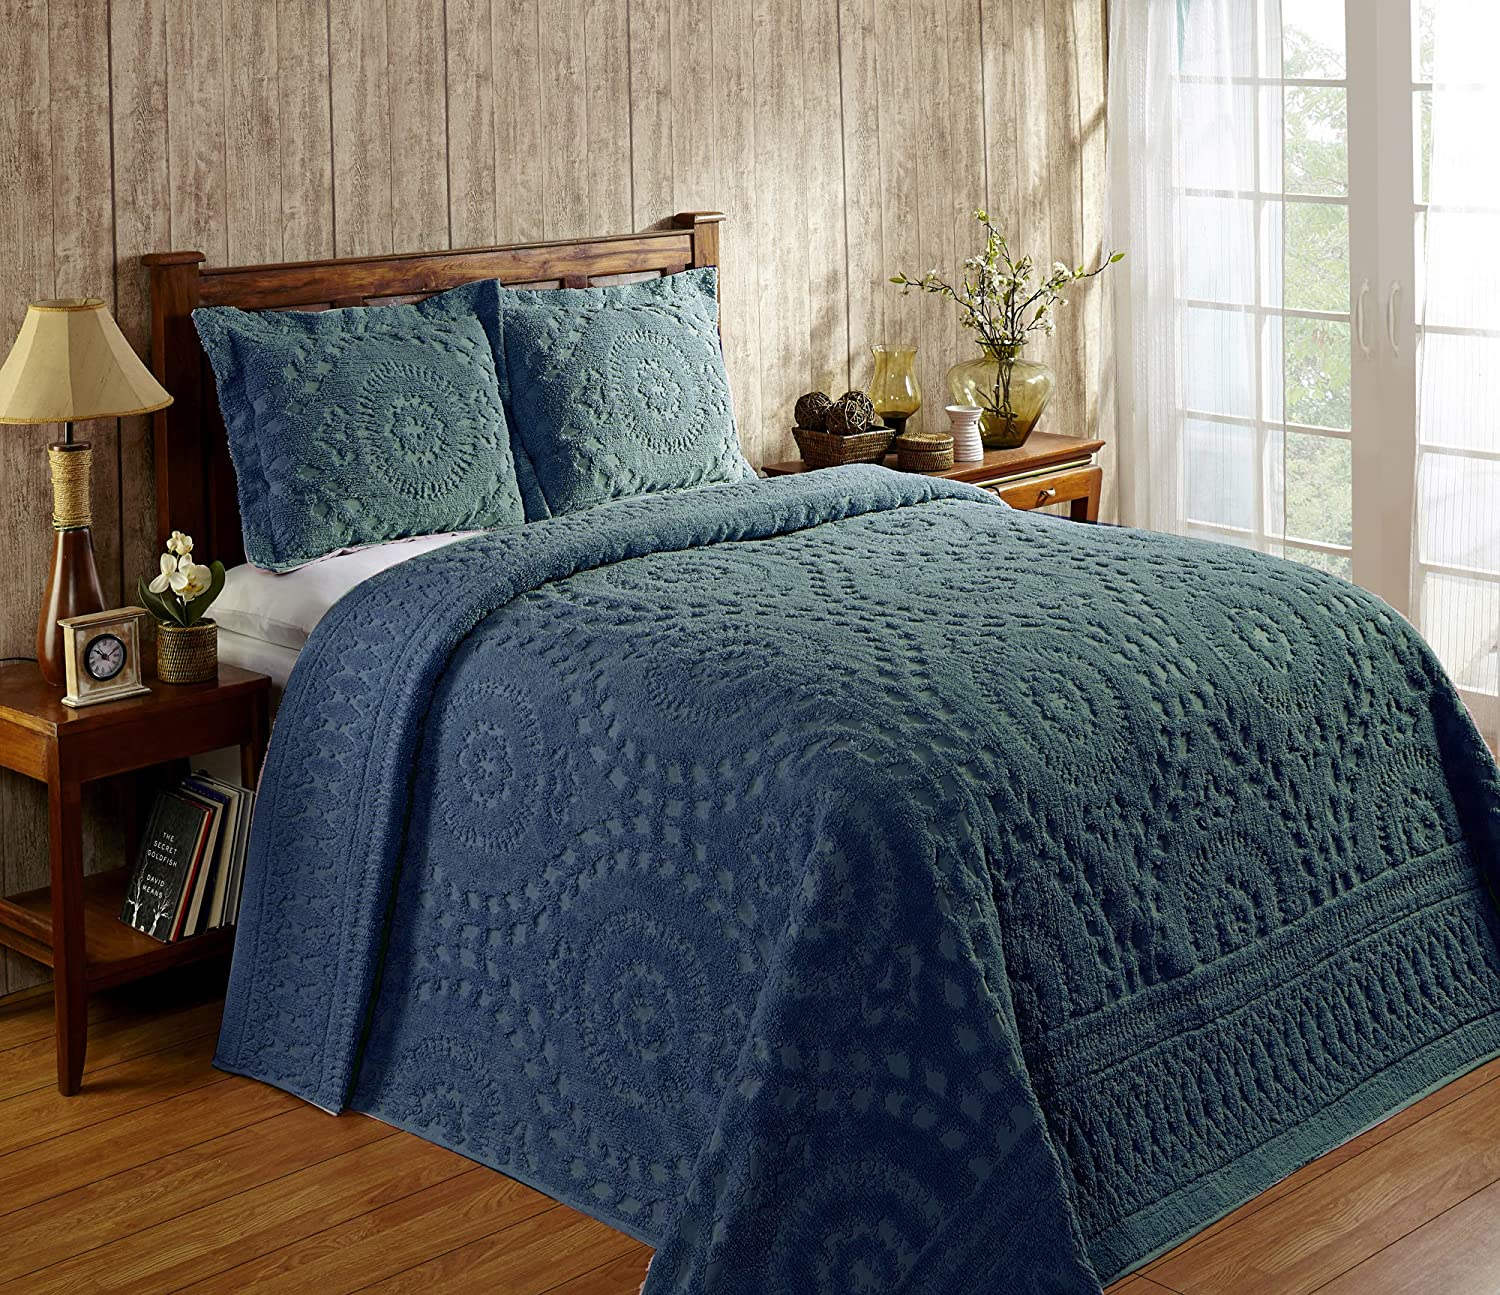 Twin Bedspread Better Trends Rio Collection in Floral Design 100/% Cotton Tufted Chenille Teal